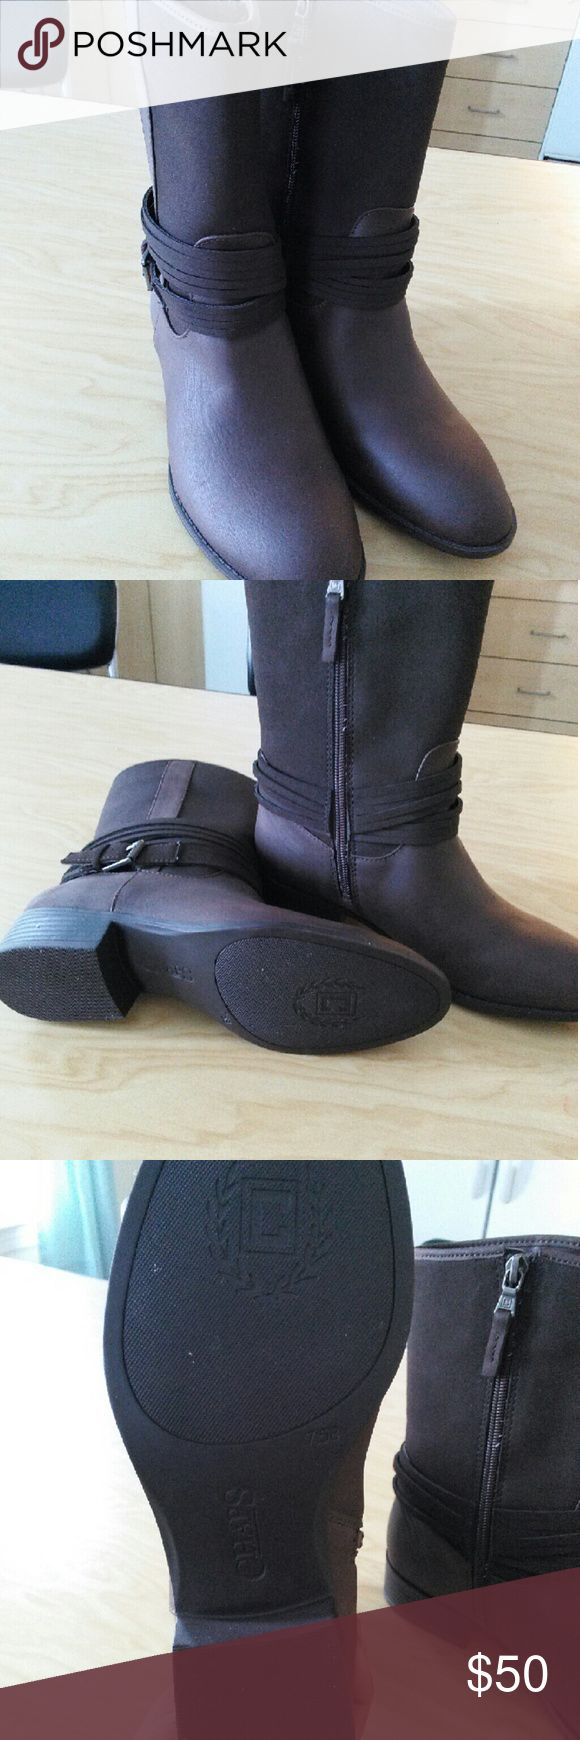 Champ Boots Brand new, never worn. Pretty boots. champs Shoes Ankle Boots & Booties